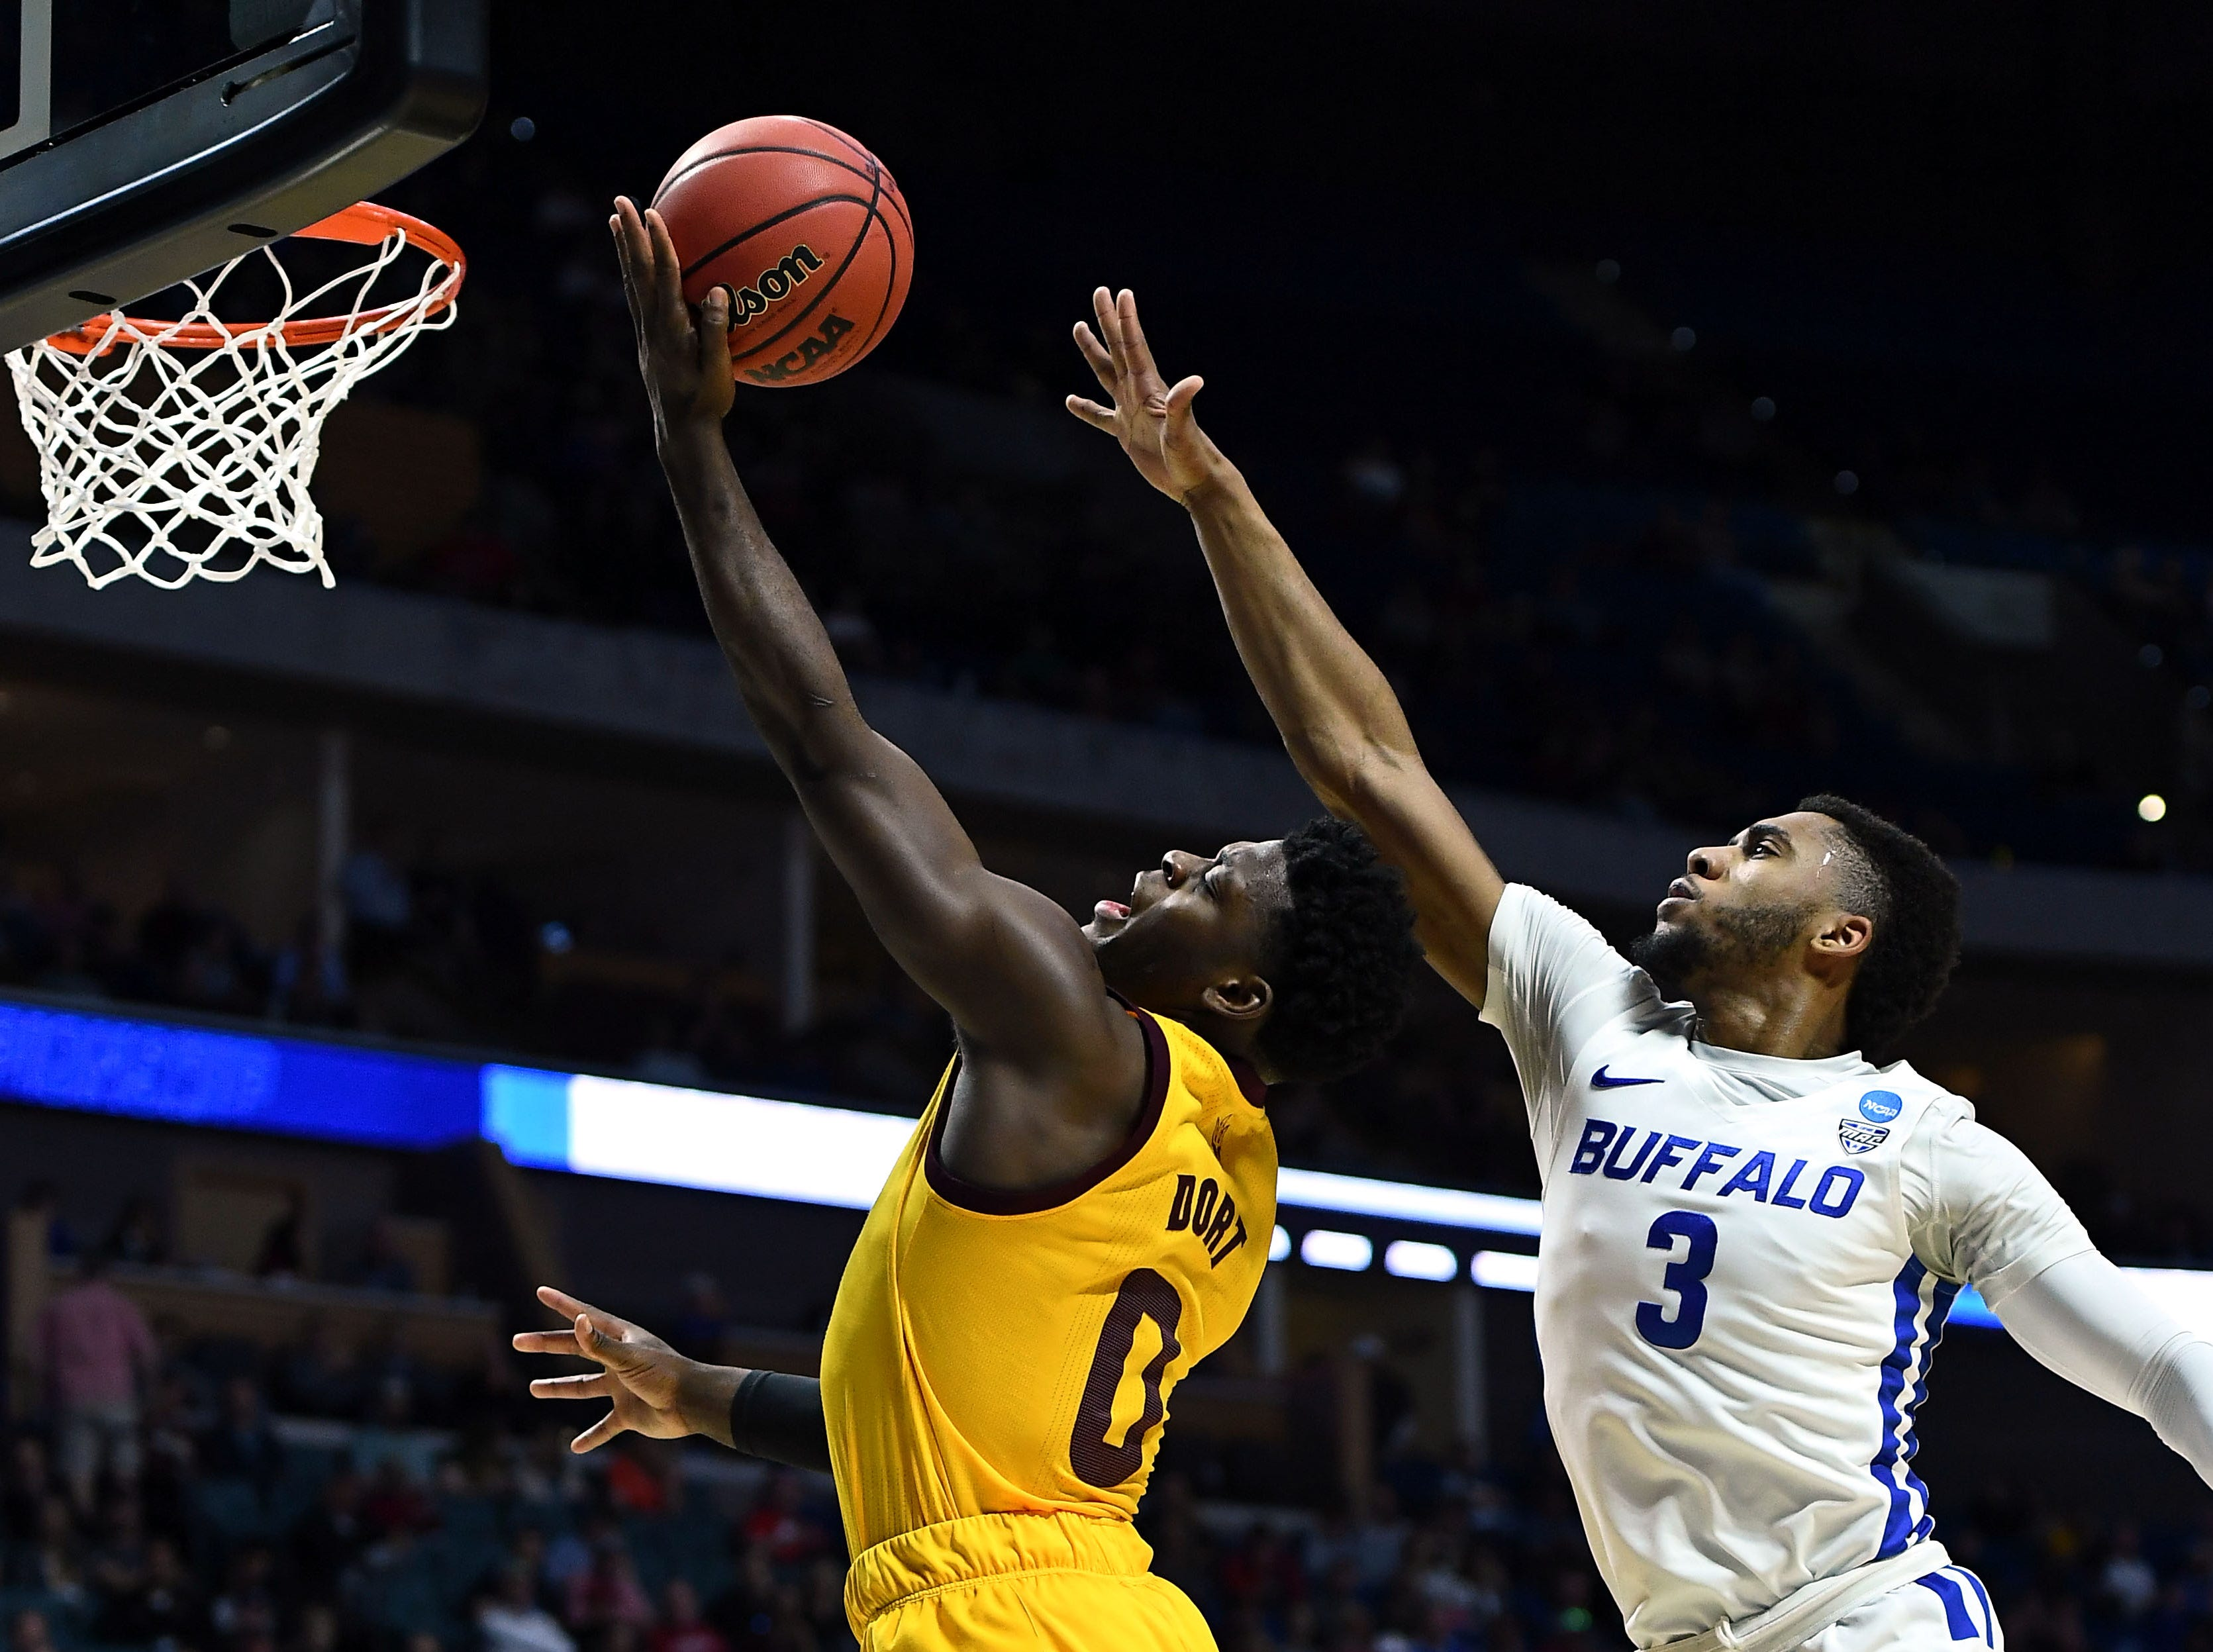 TULSA, OKLAHOMA - MARCH 22: Jayvon Graves #3 of the Buffalo Bulls reaches to block Luguentz Dort #0 of the Arizona State Sun Devils during the first half of the first round game of the 2019 NCAA Men's Basketball Tournament at BOK Center on March 22, 2019 in Tulsa, Oklahoma. (Photo by Stacy Revere/Getty Images)